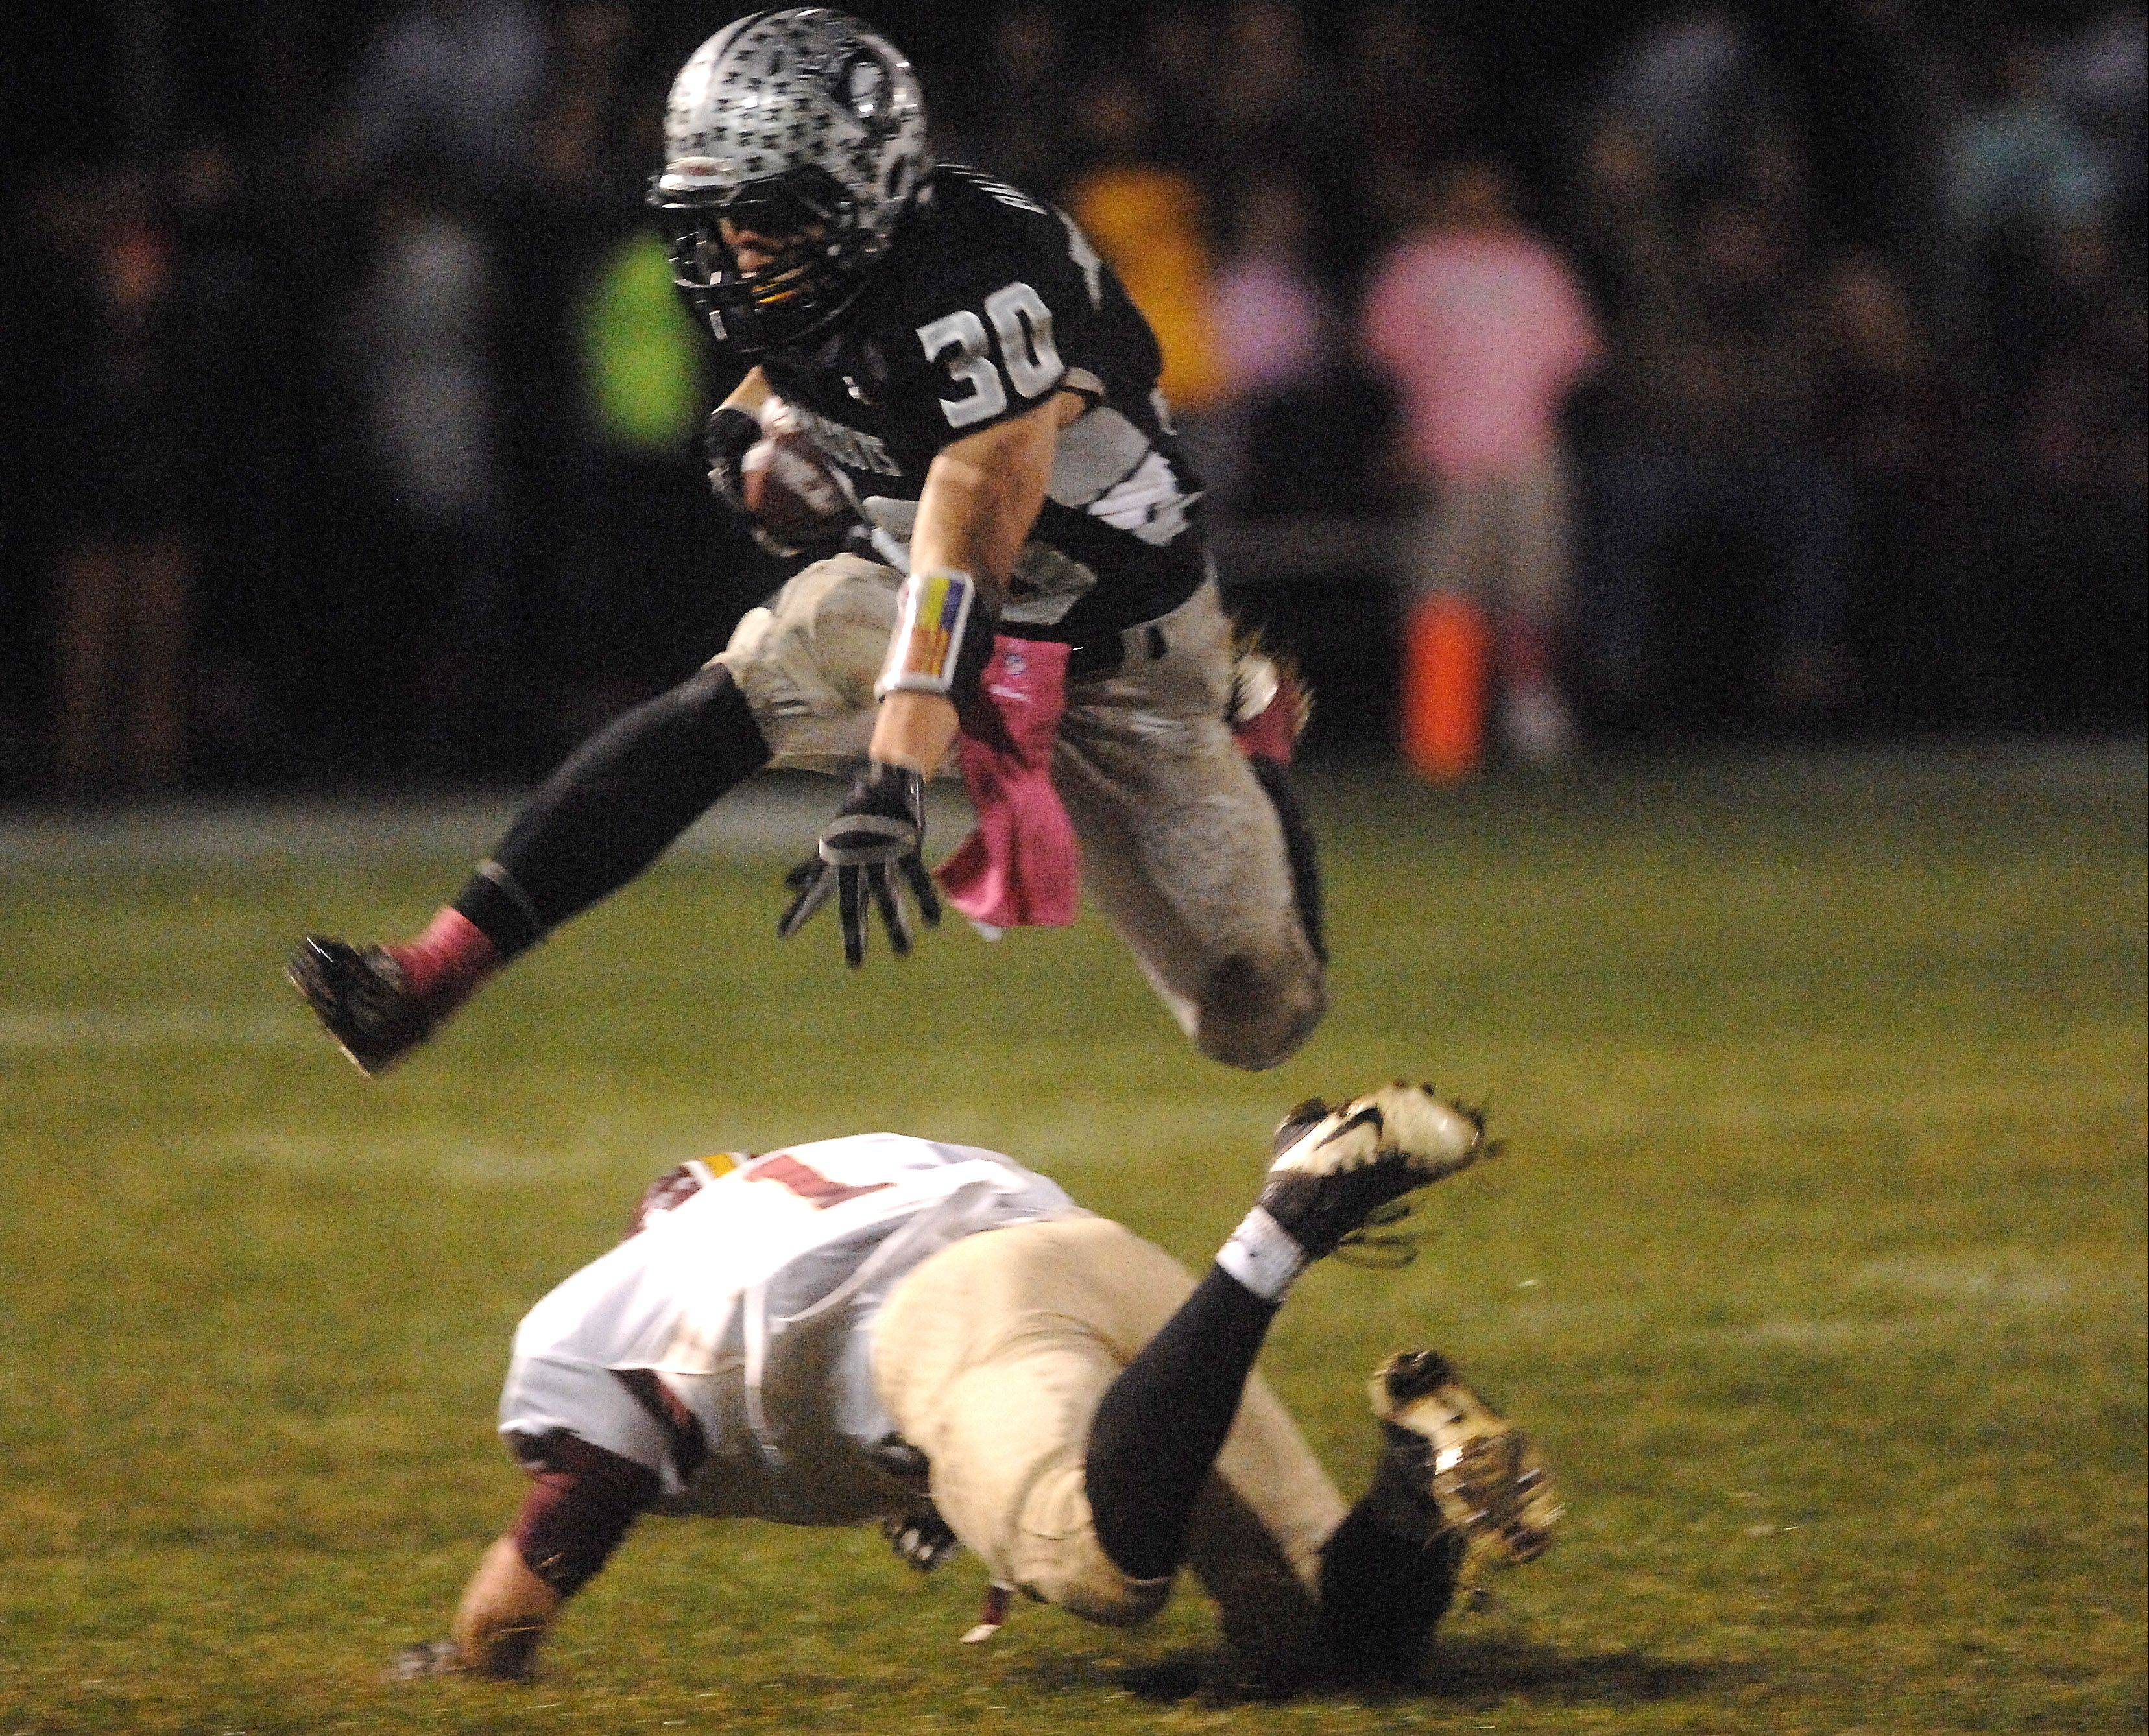 Kaneland's Jesse Balluff, pictured hurdling a would-be Morris tackler last month, will be a key part of the Knights' game plan at Lincoln-Way West Saturday.